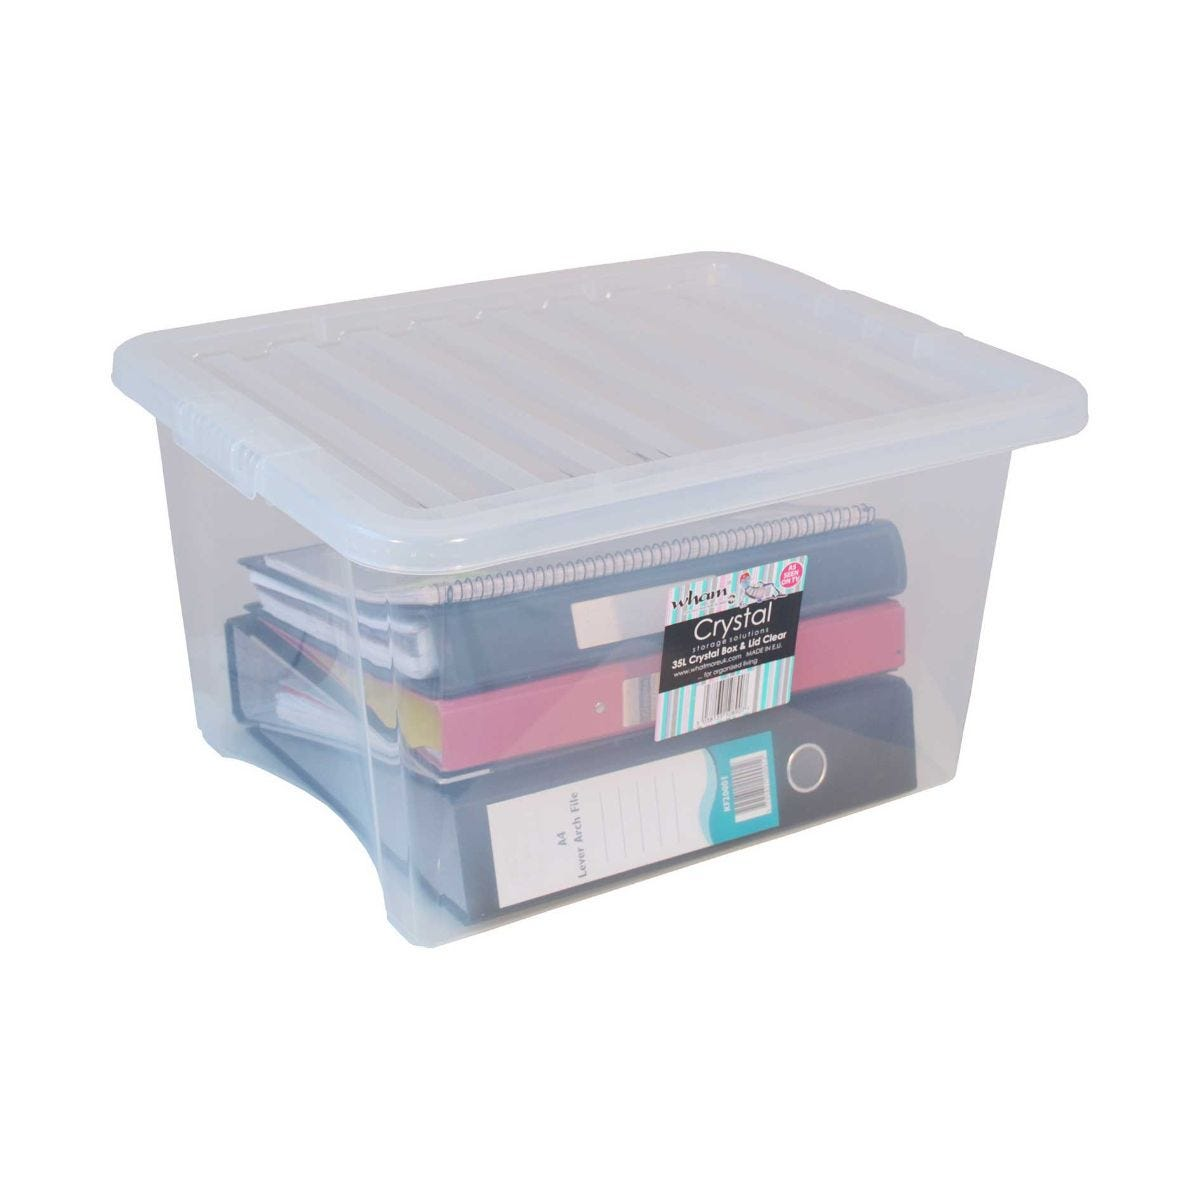 Image of 35 Litre Crystal Storage Box and Lid Pack of 10